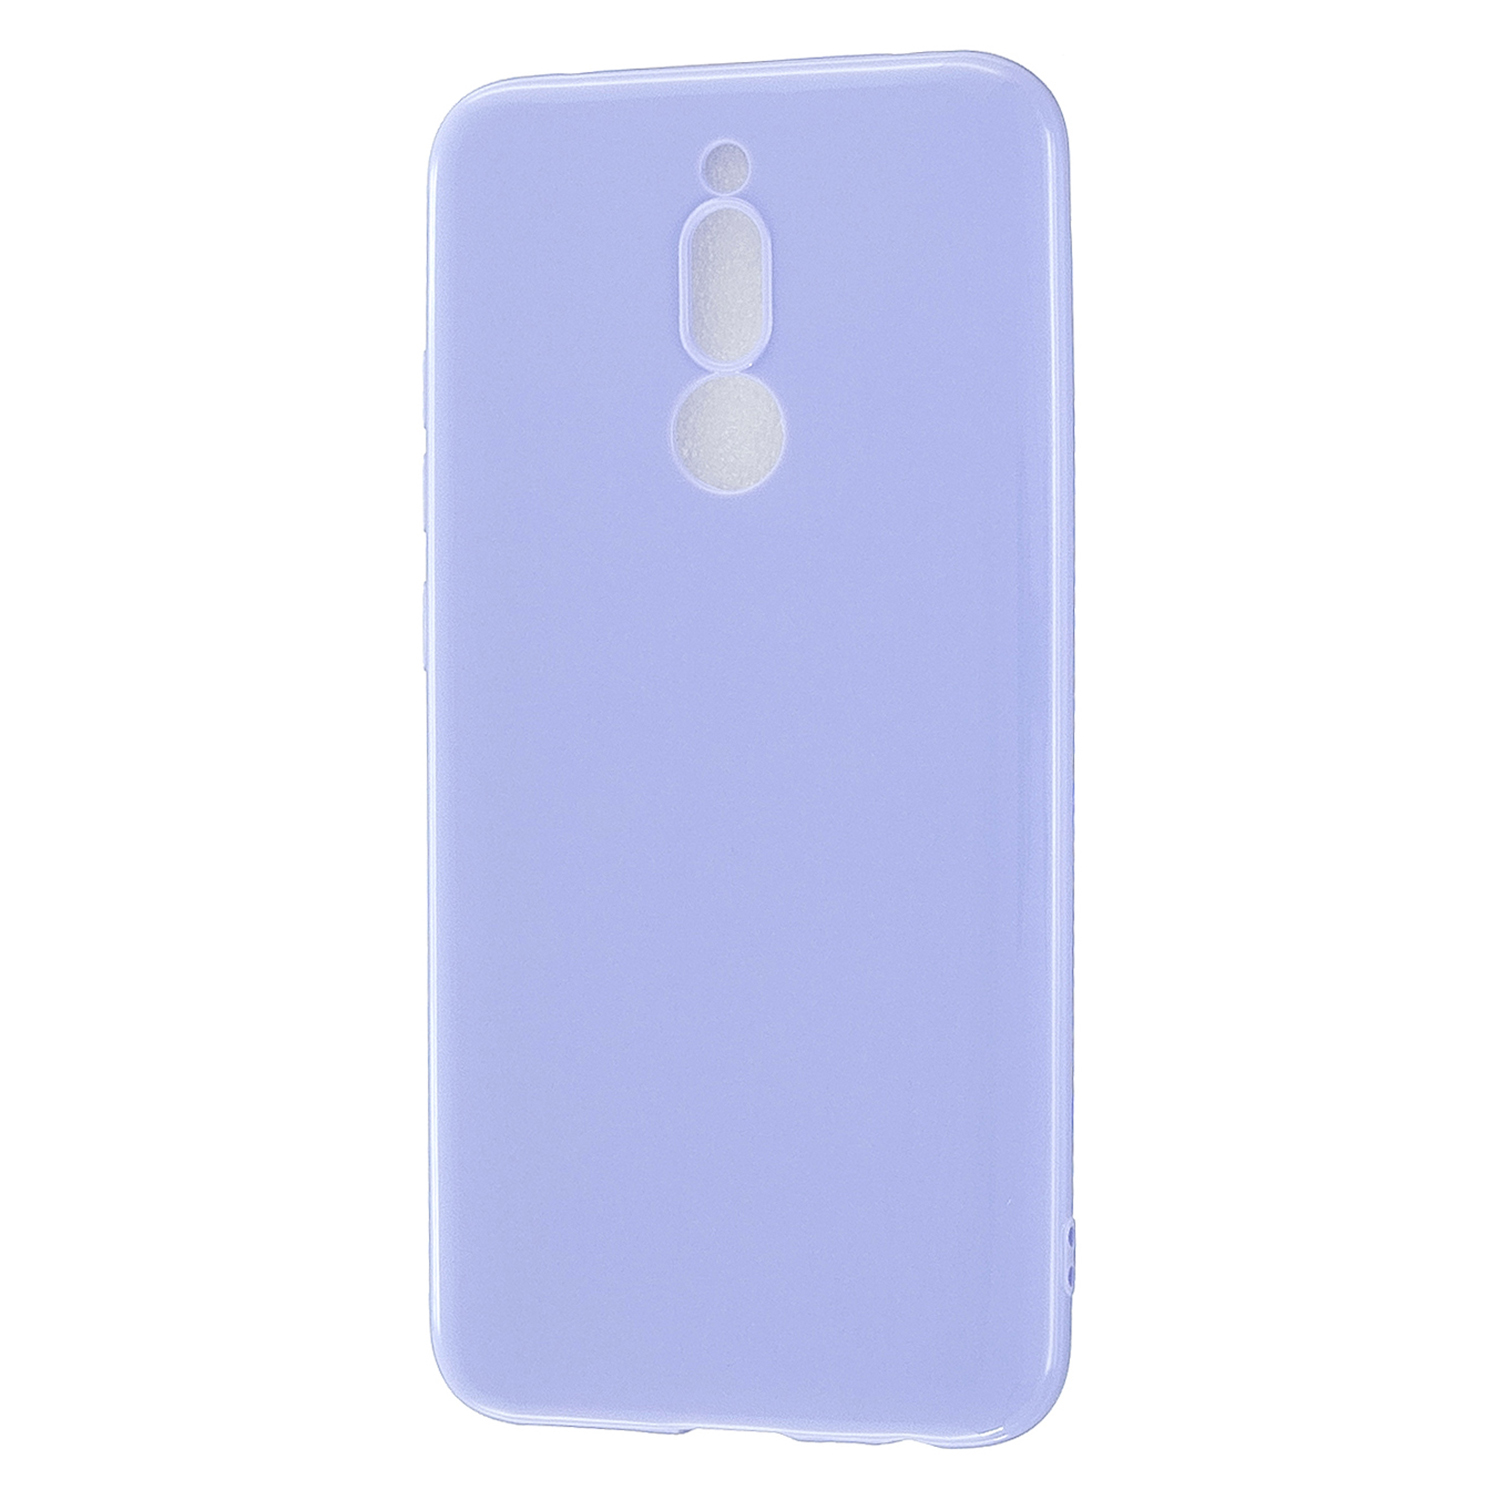 For Redmi 8 / Redmi 8A Cellphone Cover Glossy TPU Phone Case Defender Full Body Protection Smartphone Shell Taro purple